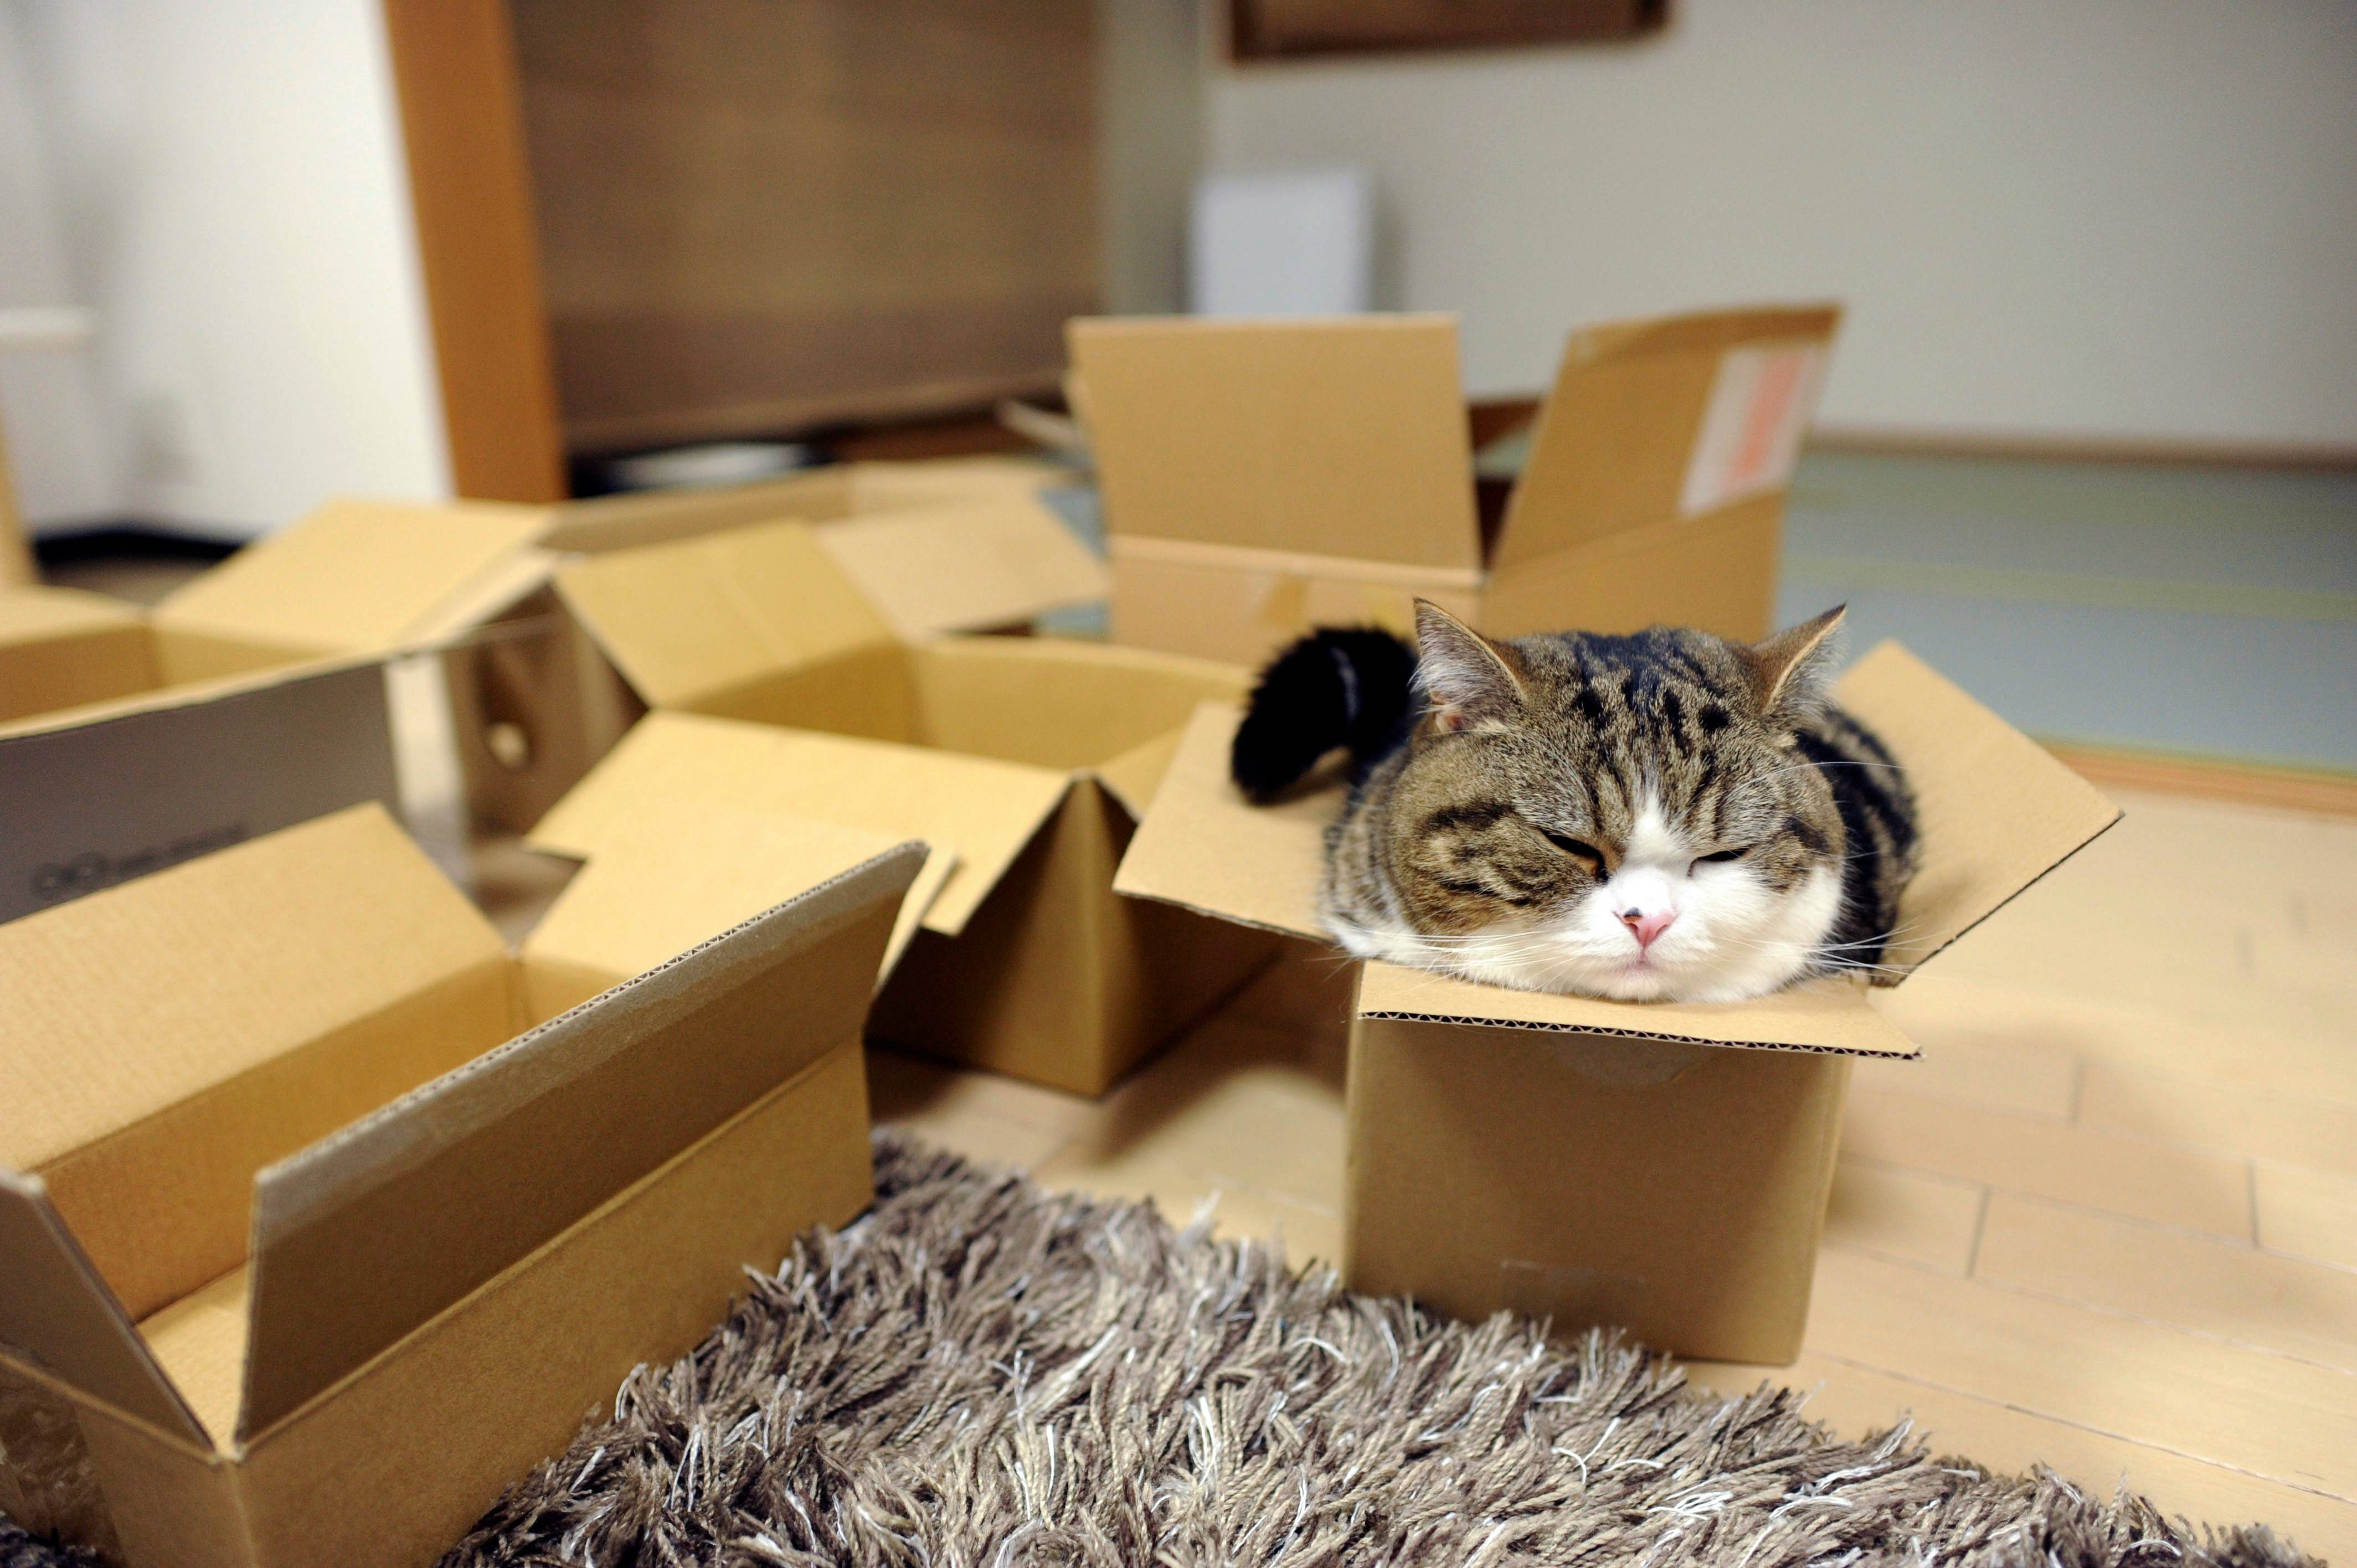 Maru the cat became an internet star thanks to the YouTube channel mugumogu, and some of his feline friends will become big-screen stars this weekend as part of a charity presentation of cat videos.